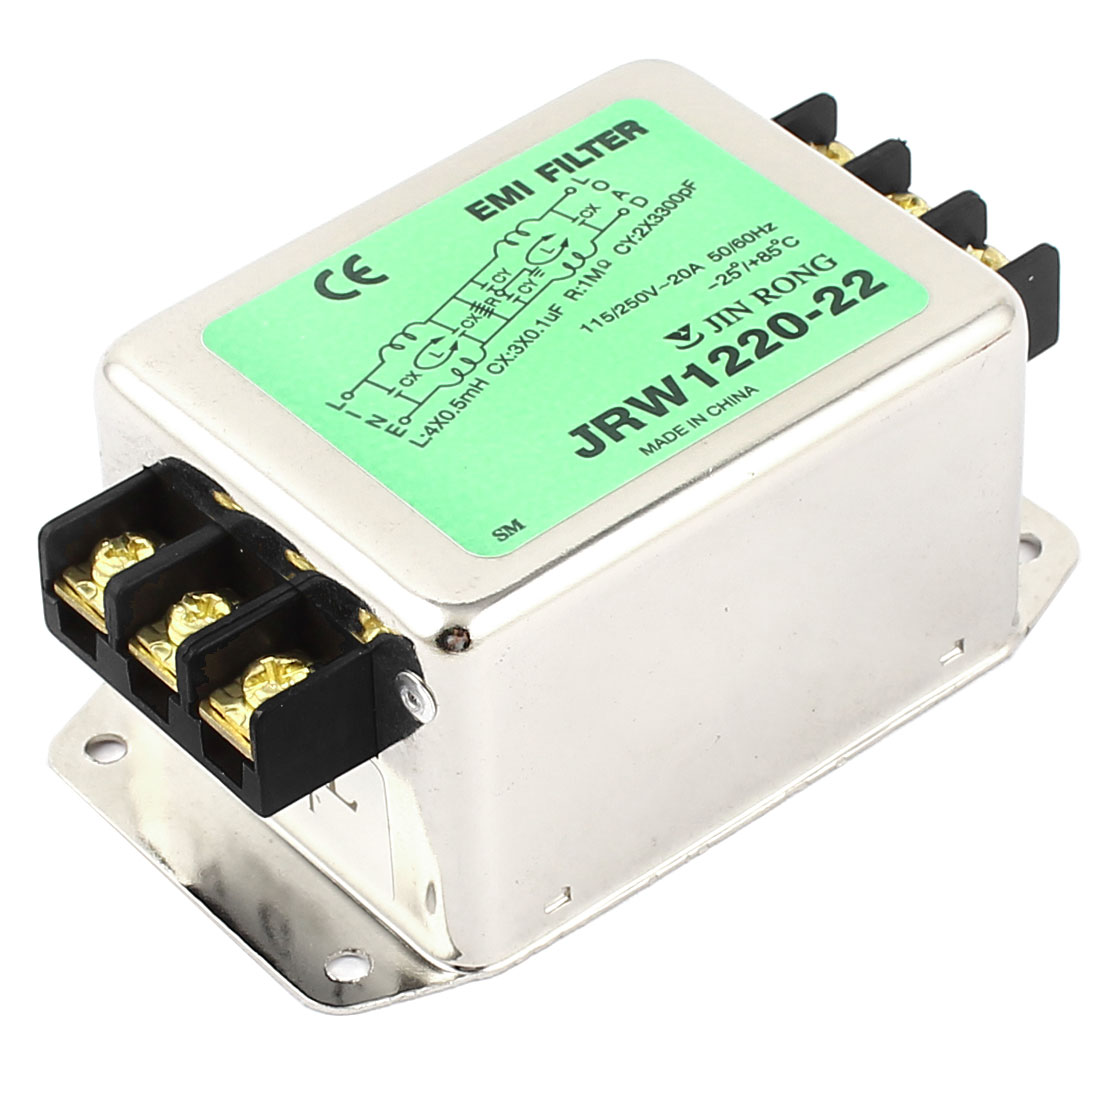 AC 115V/250Volt 20A Rated Current Metal Housing Power Line EMI Filter